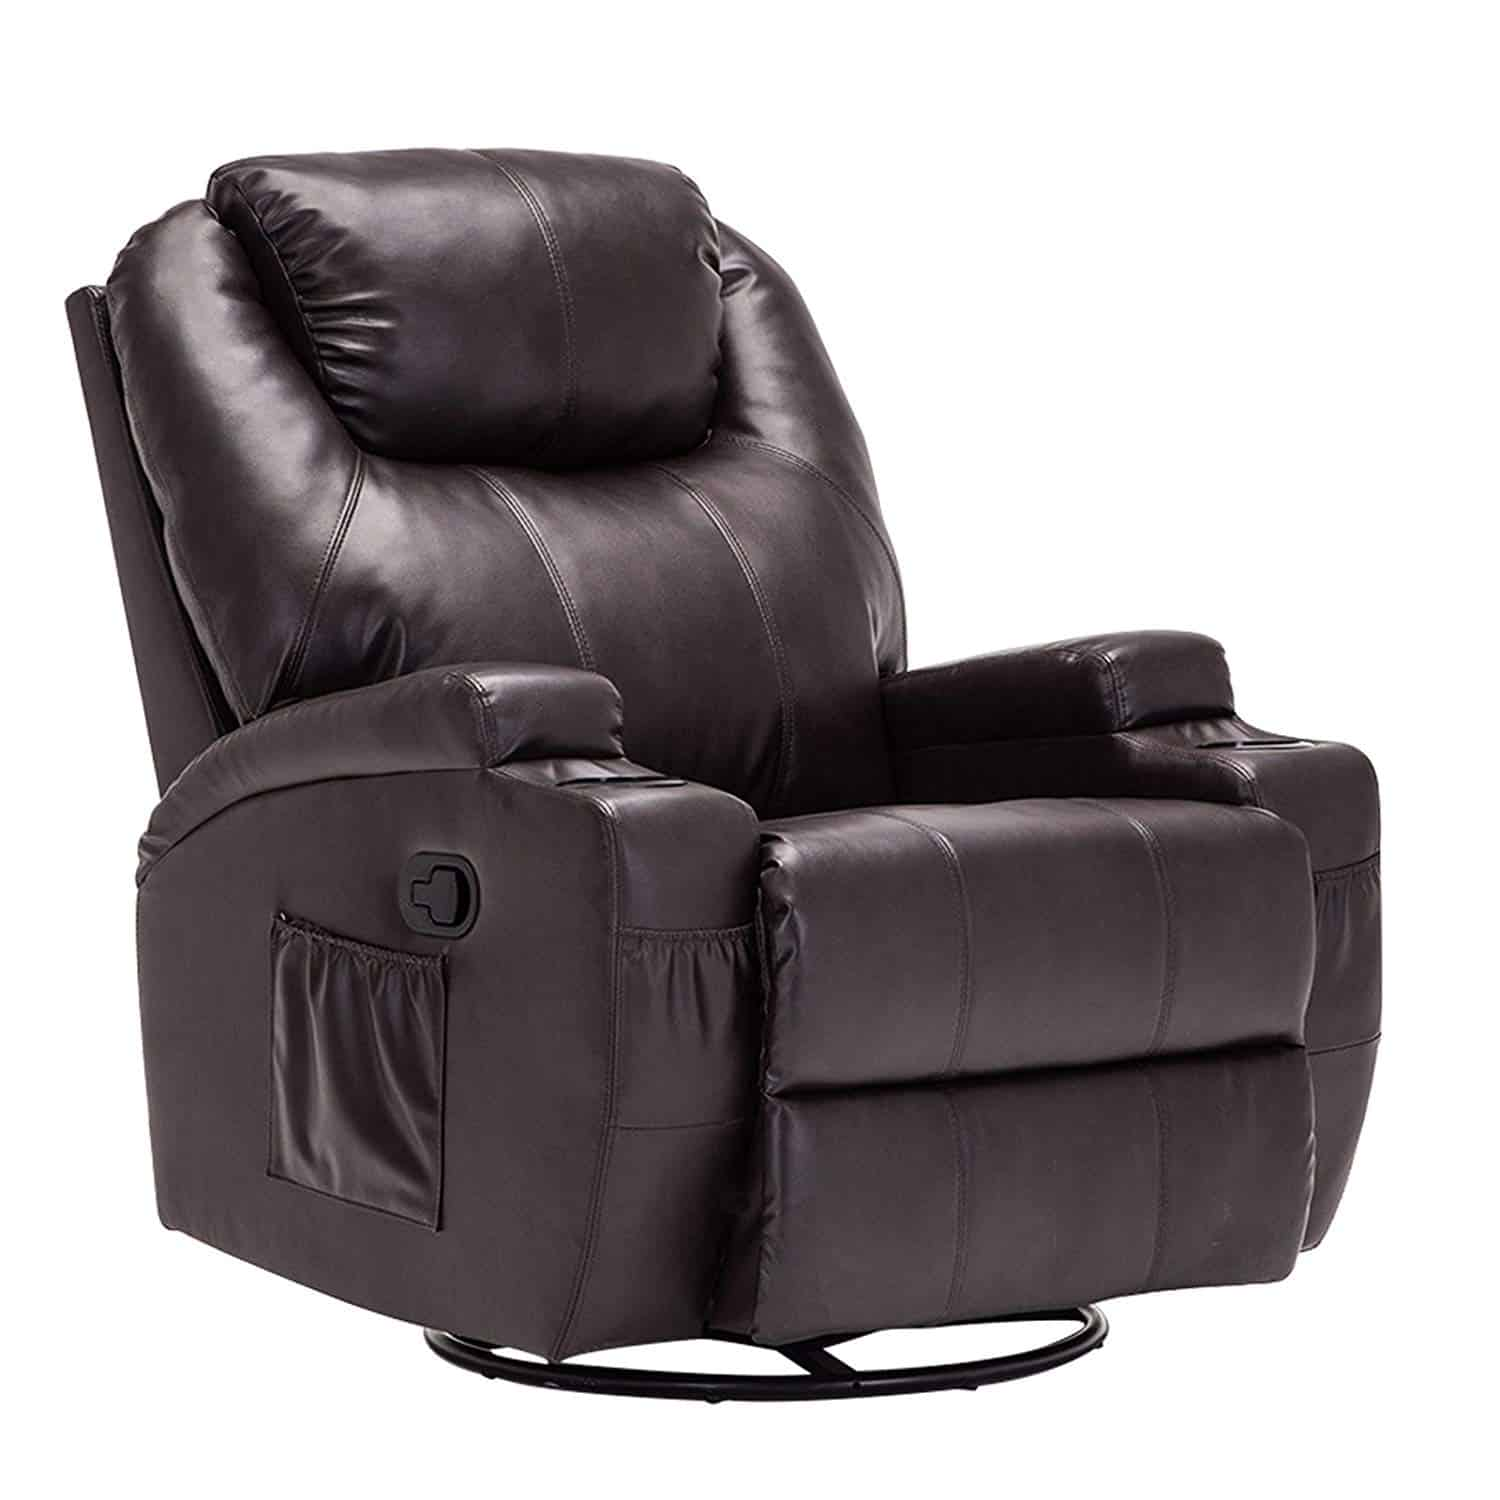 Mecor Heated Leather Massage Chair